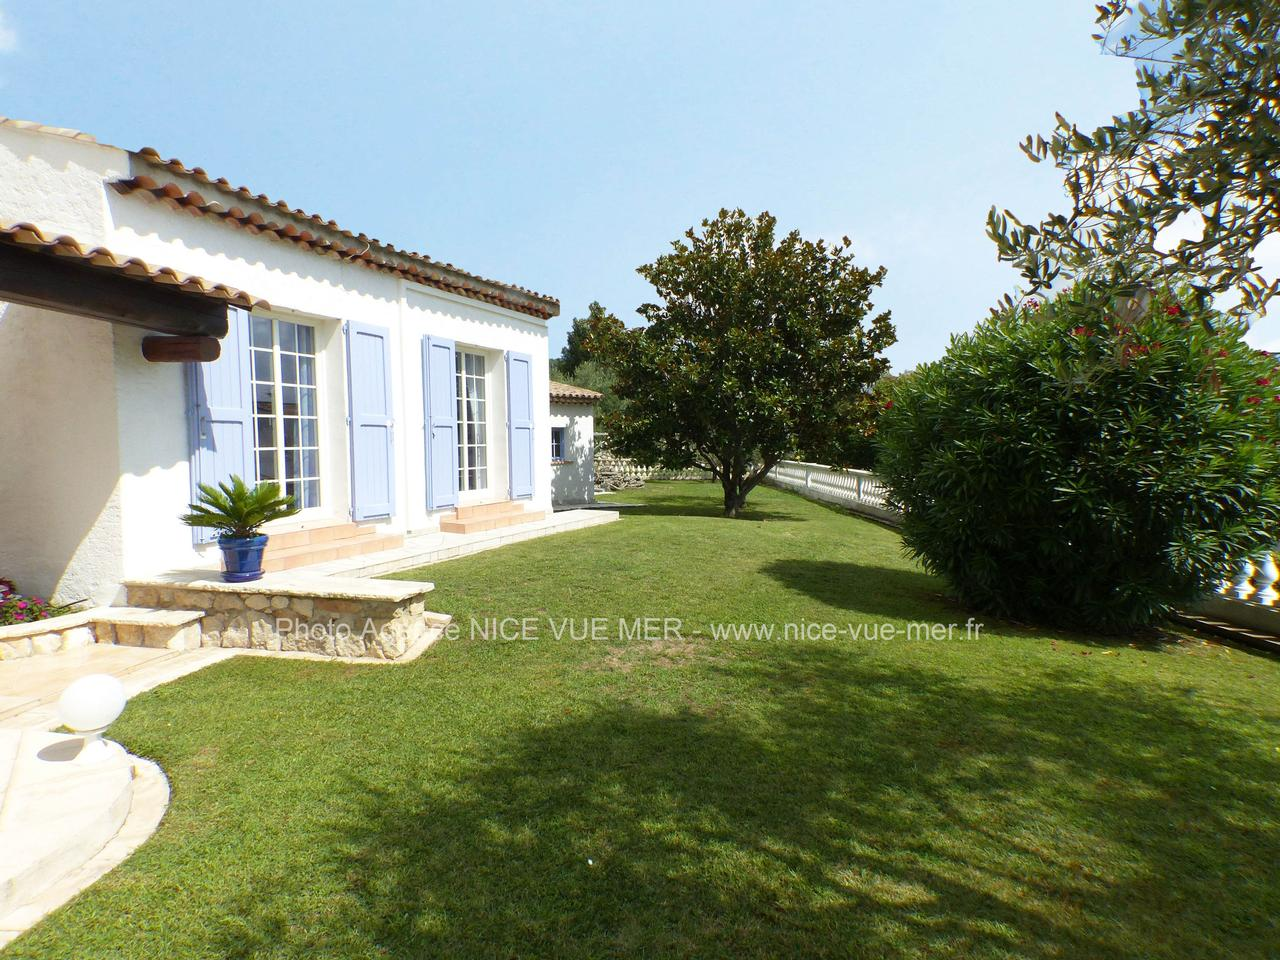 Real Estate Nice Sea View House St Jeannet French Riviera Village